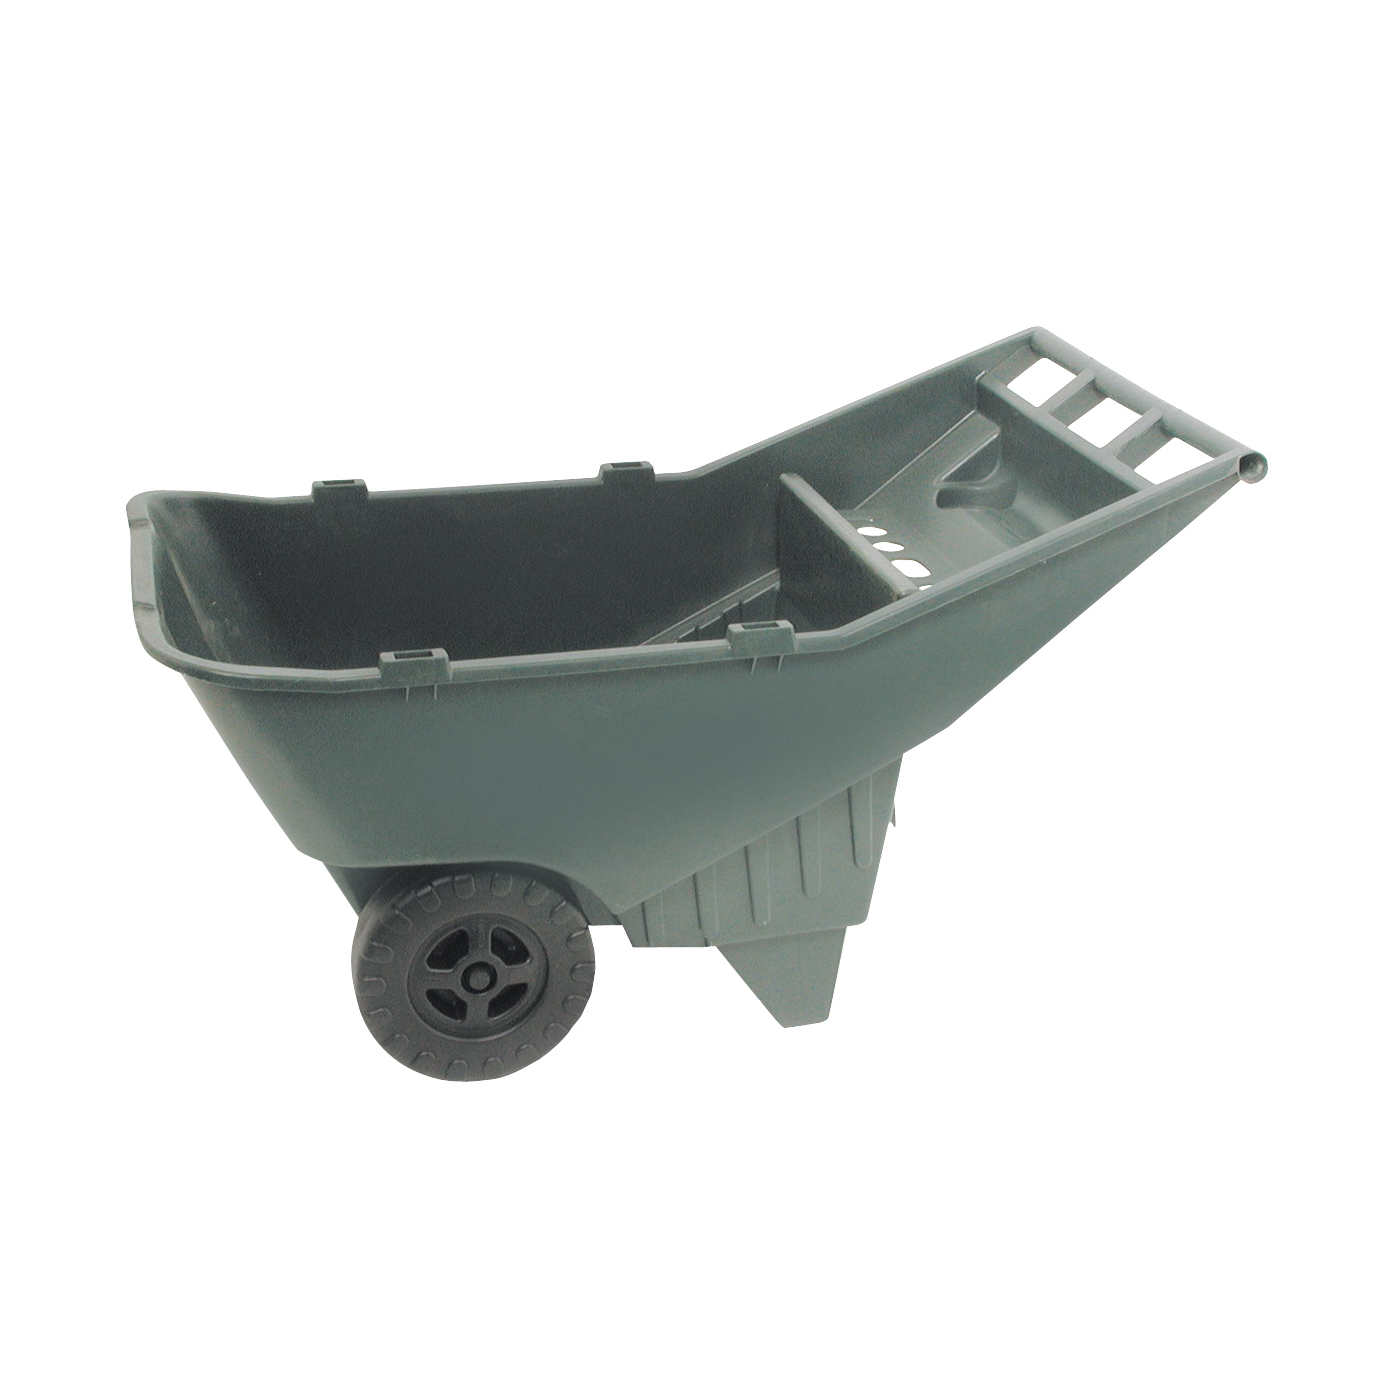 Picture of Rubbermaid 370612714 Lawn Cart, 200 lb, HDPE Deck, 2 -Wheel, 11 in Wheel, Green